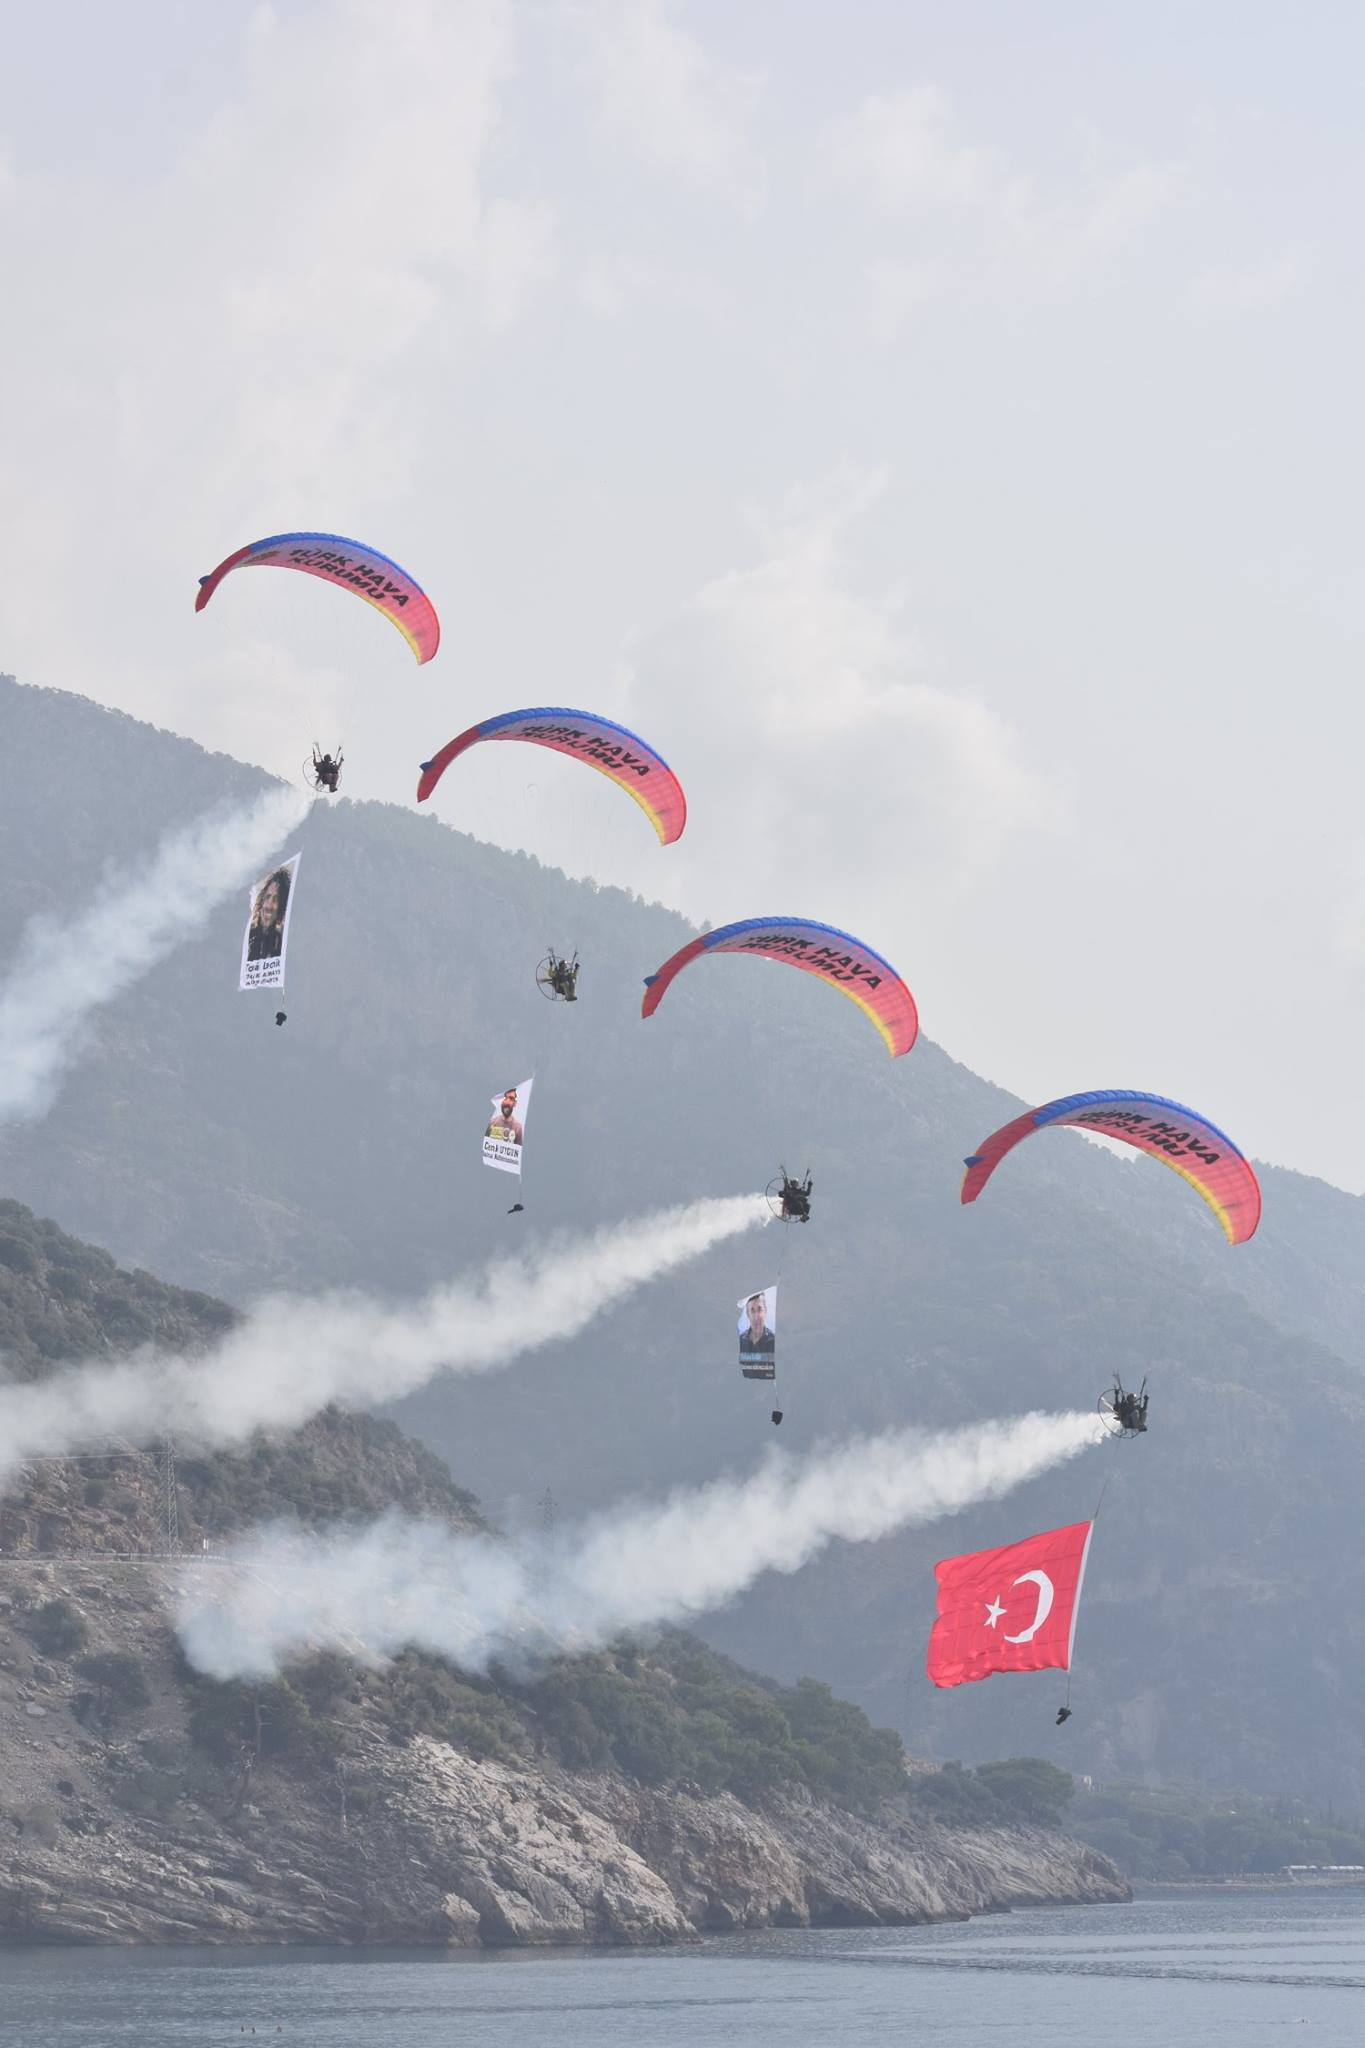 The spectacular 19th International Ölüdeniz Air Games - a